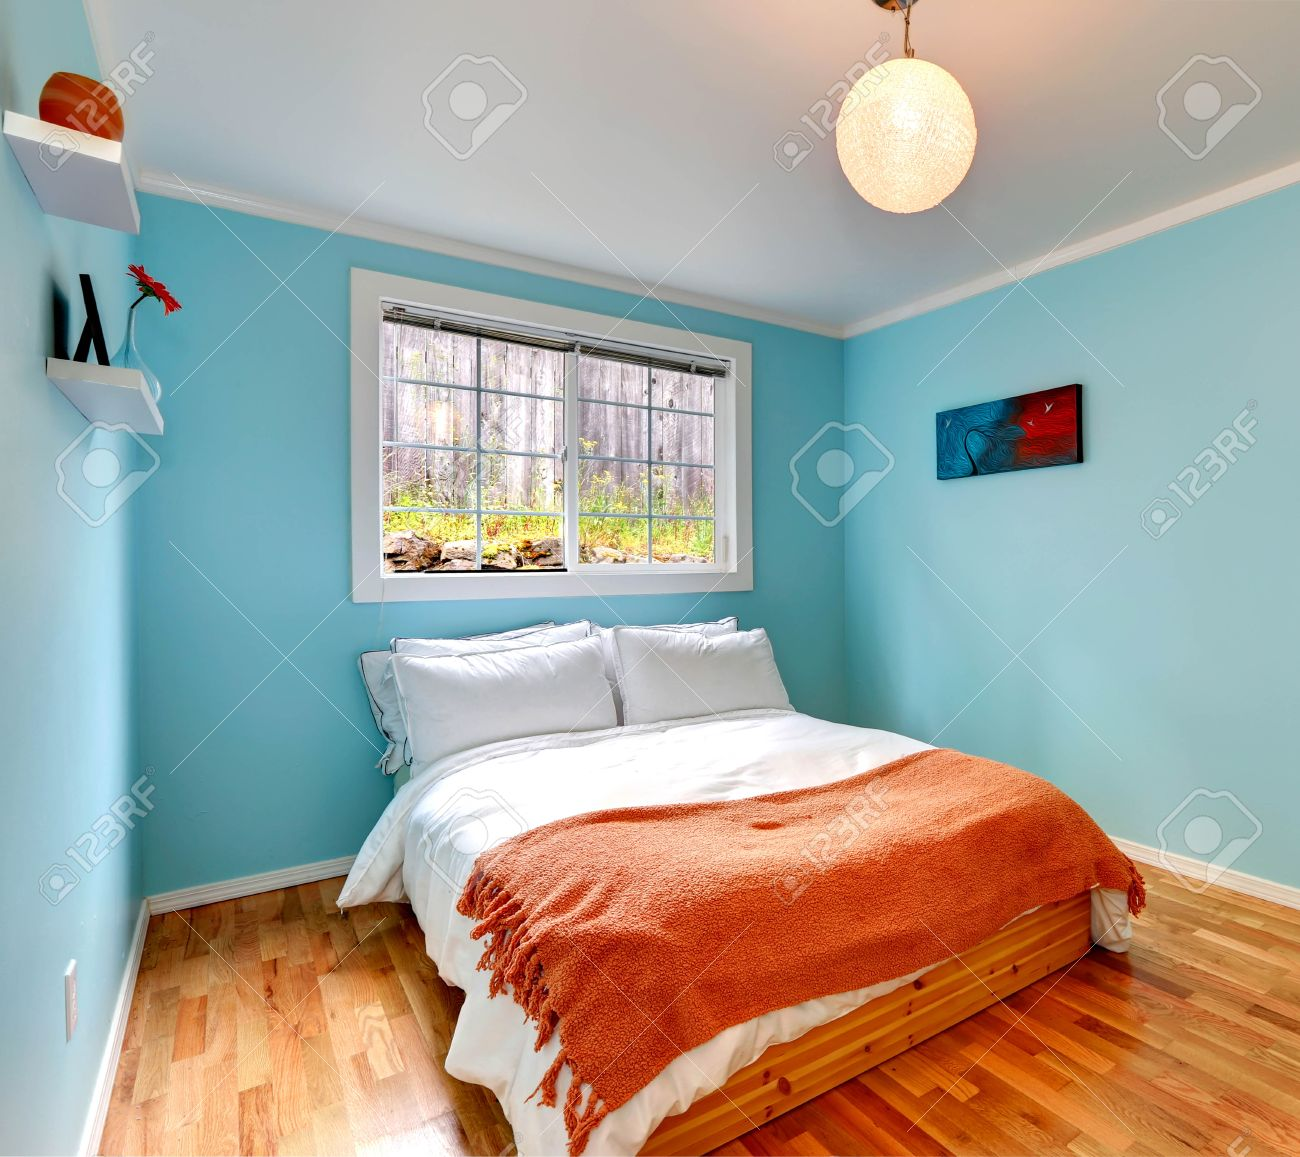 Cozy Bedroom In Light Blue Color With Hardwood Floor And Wooden - Orange and light blue bedroom